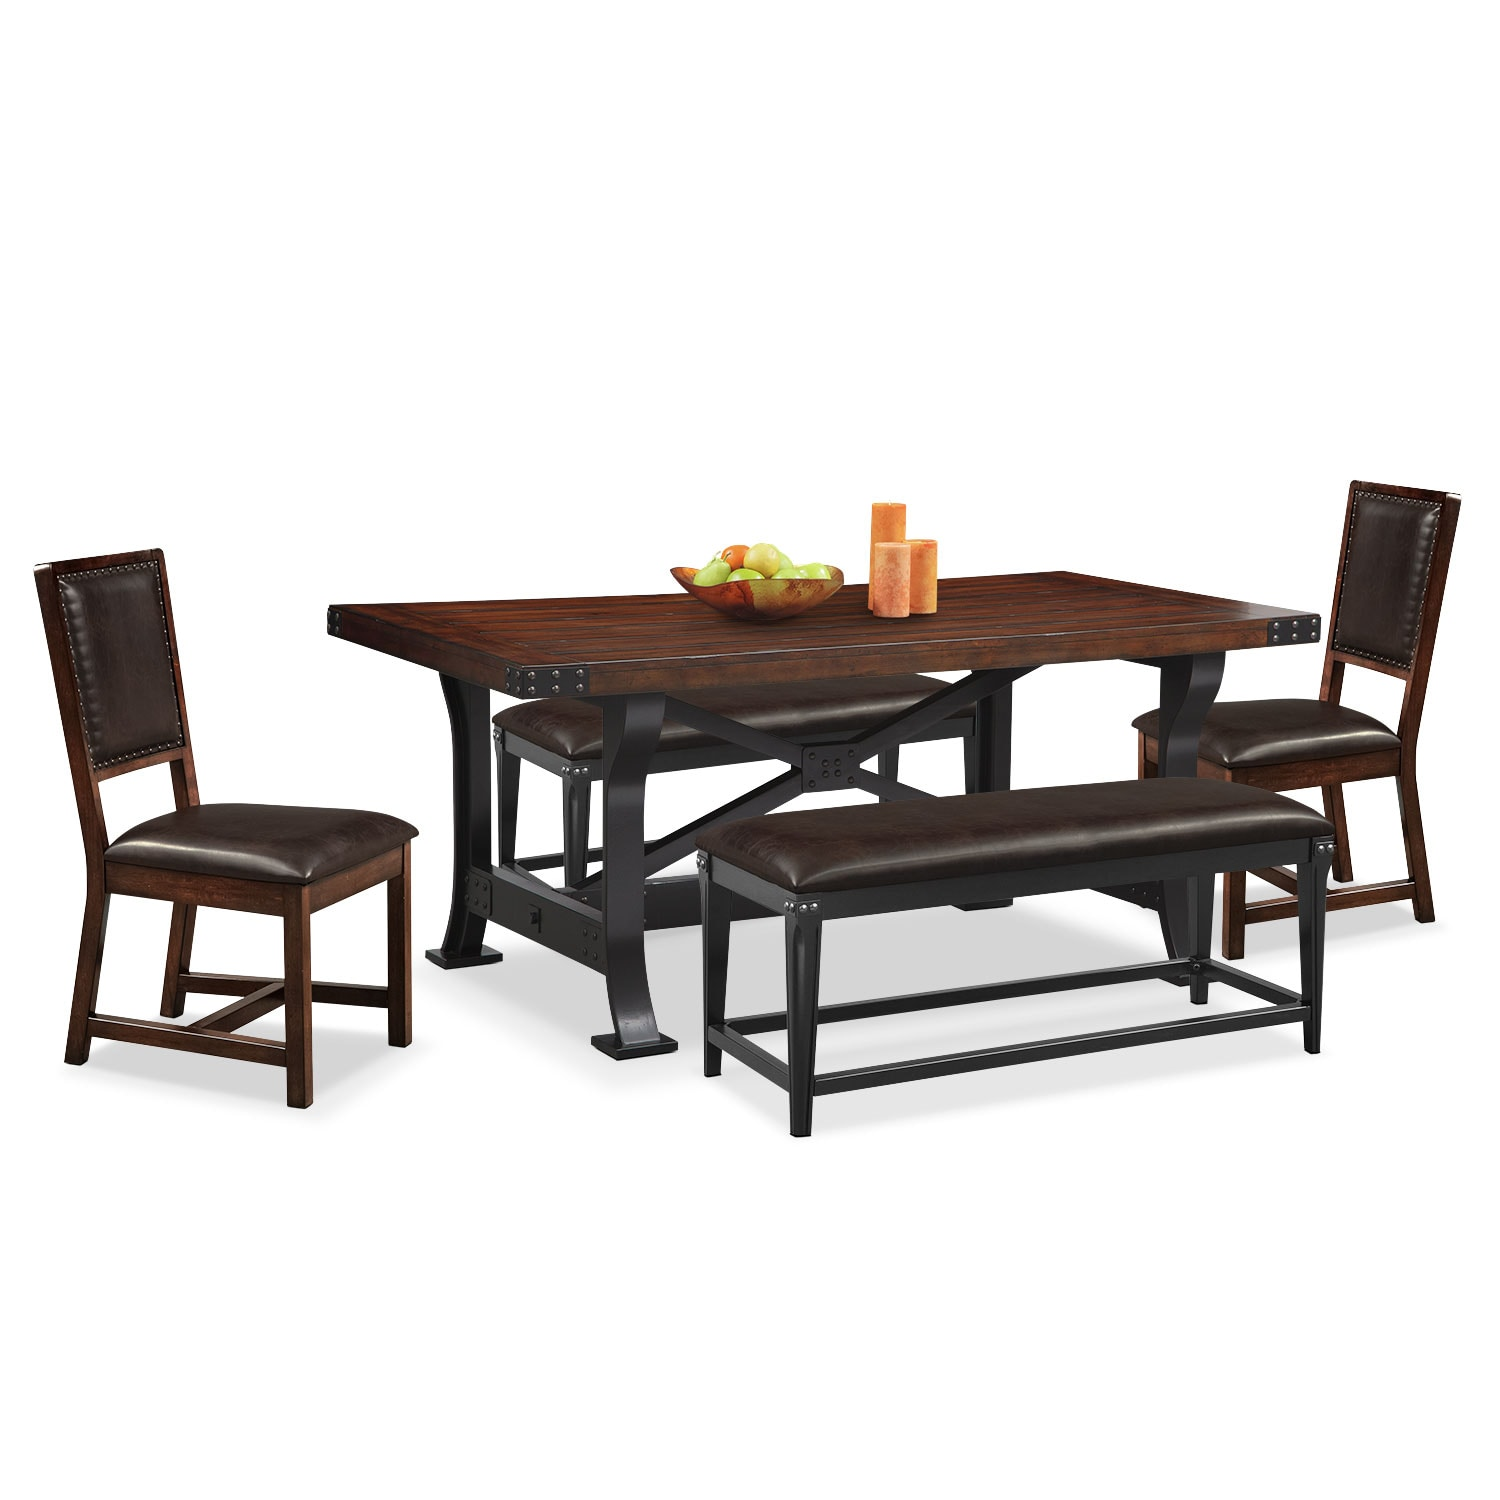 Dining Room Furniture - Newcastle Dining Table, 2 Side Chairs and 2 Benches - Mahogany